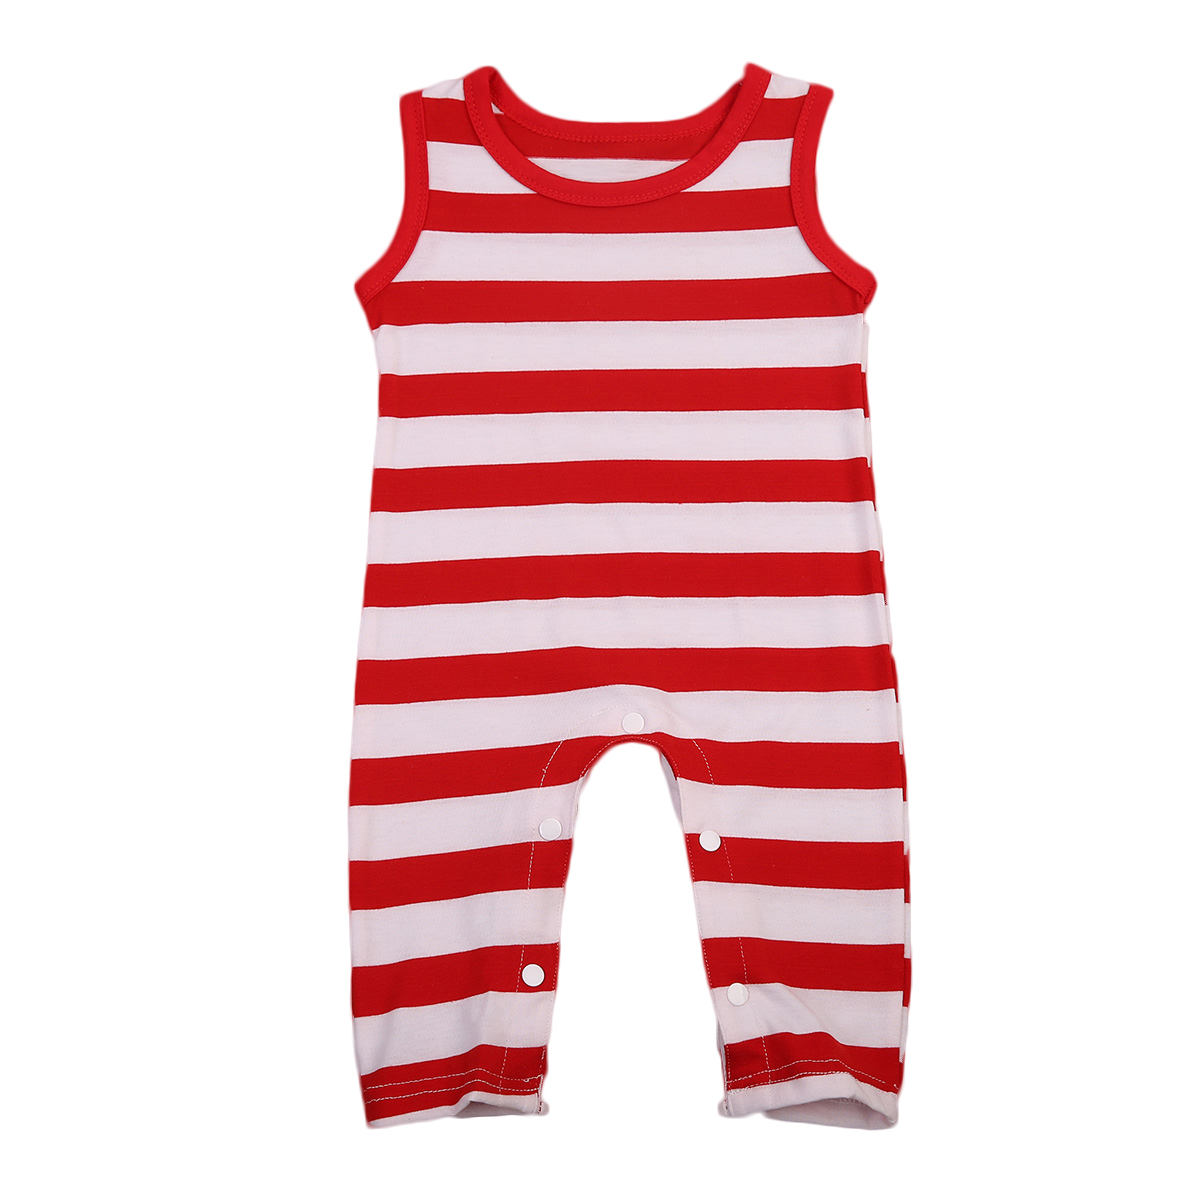 Adorable Rompers Summer Baby Unisex Striped Jumper Jumpsuit Newborn Baby O-Neck Romper Infant Boy Girl Jumpsuit Clothes Outfits 2017 new adorable summer games infant newborn baby boy girl romper jumpsuit outfits clothes clothing